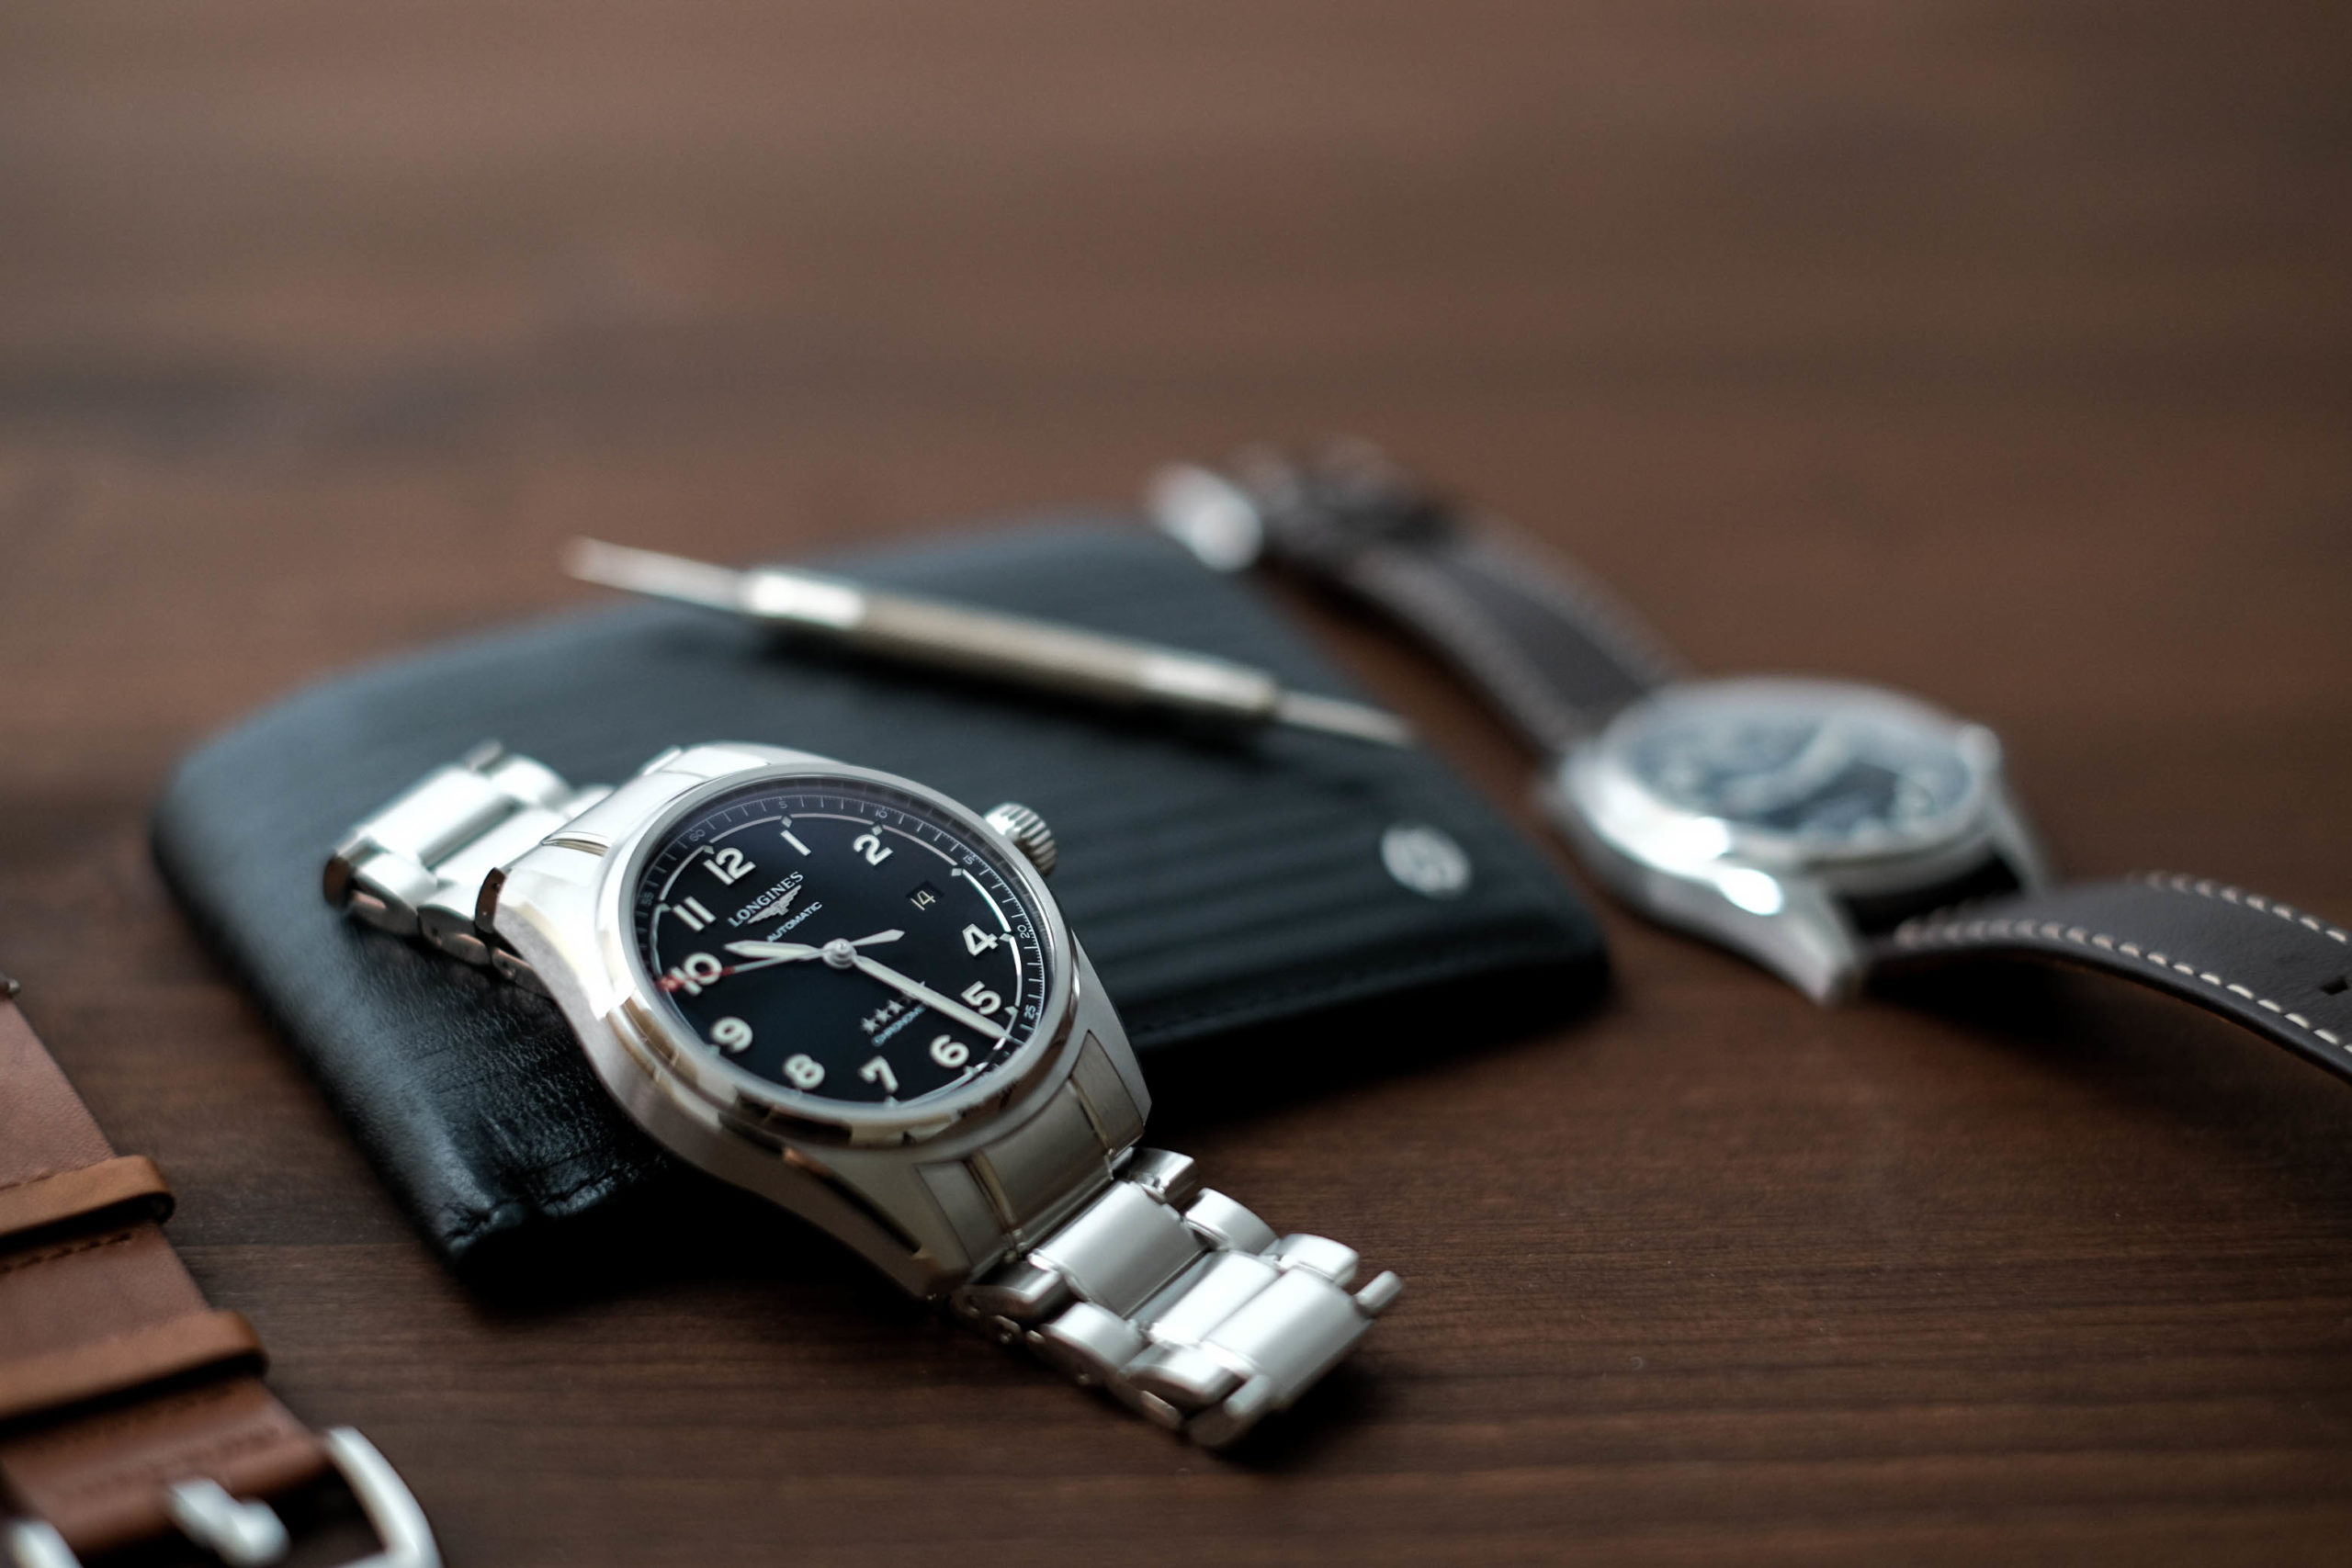 Watch with tool and wallet